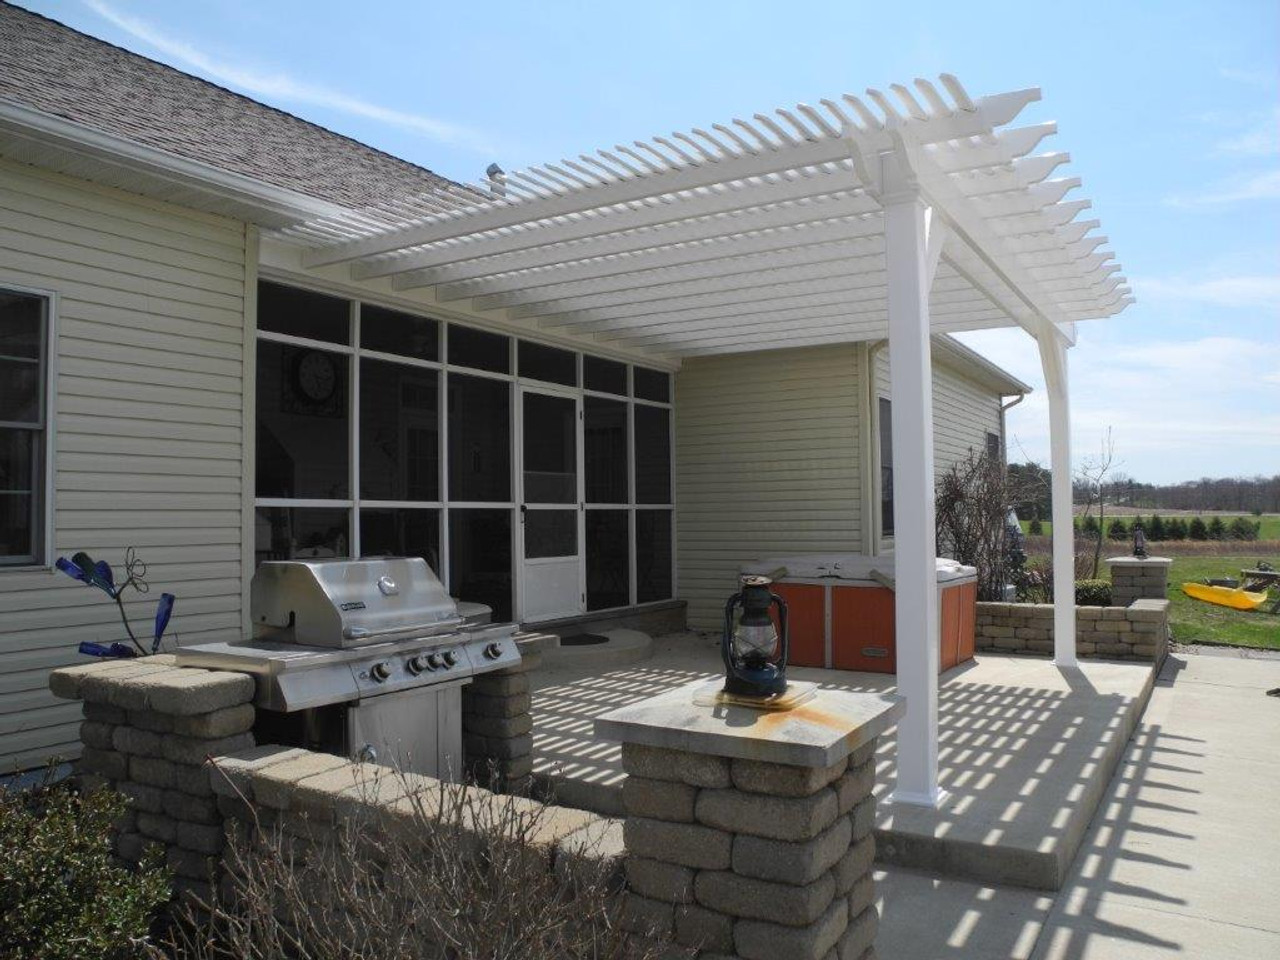 15x18 (roof span) Custom Newport PVC pergola design, Shademax, Attached to the house